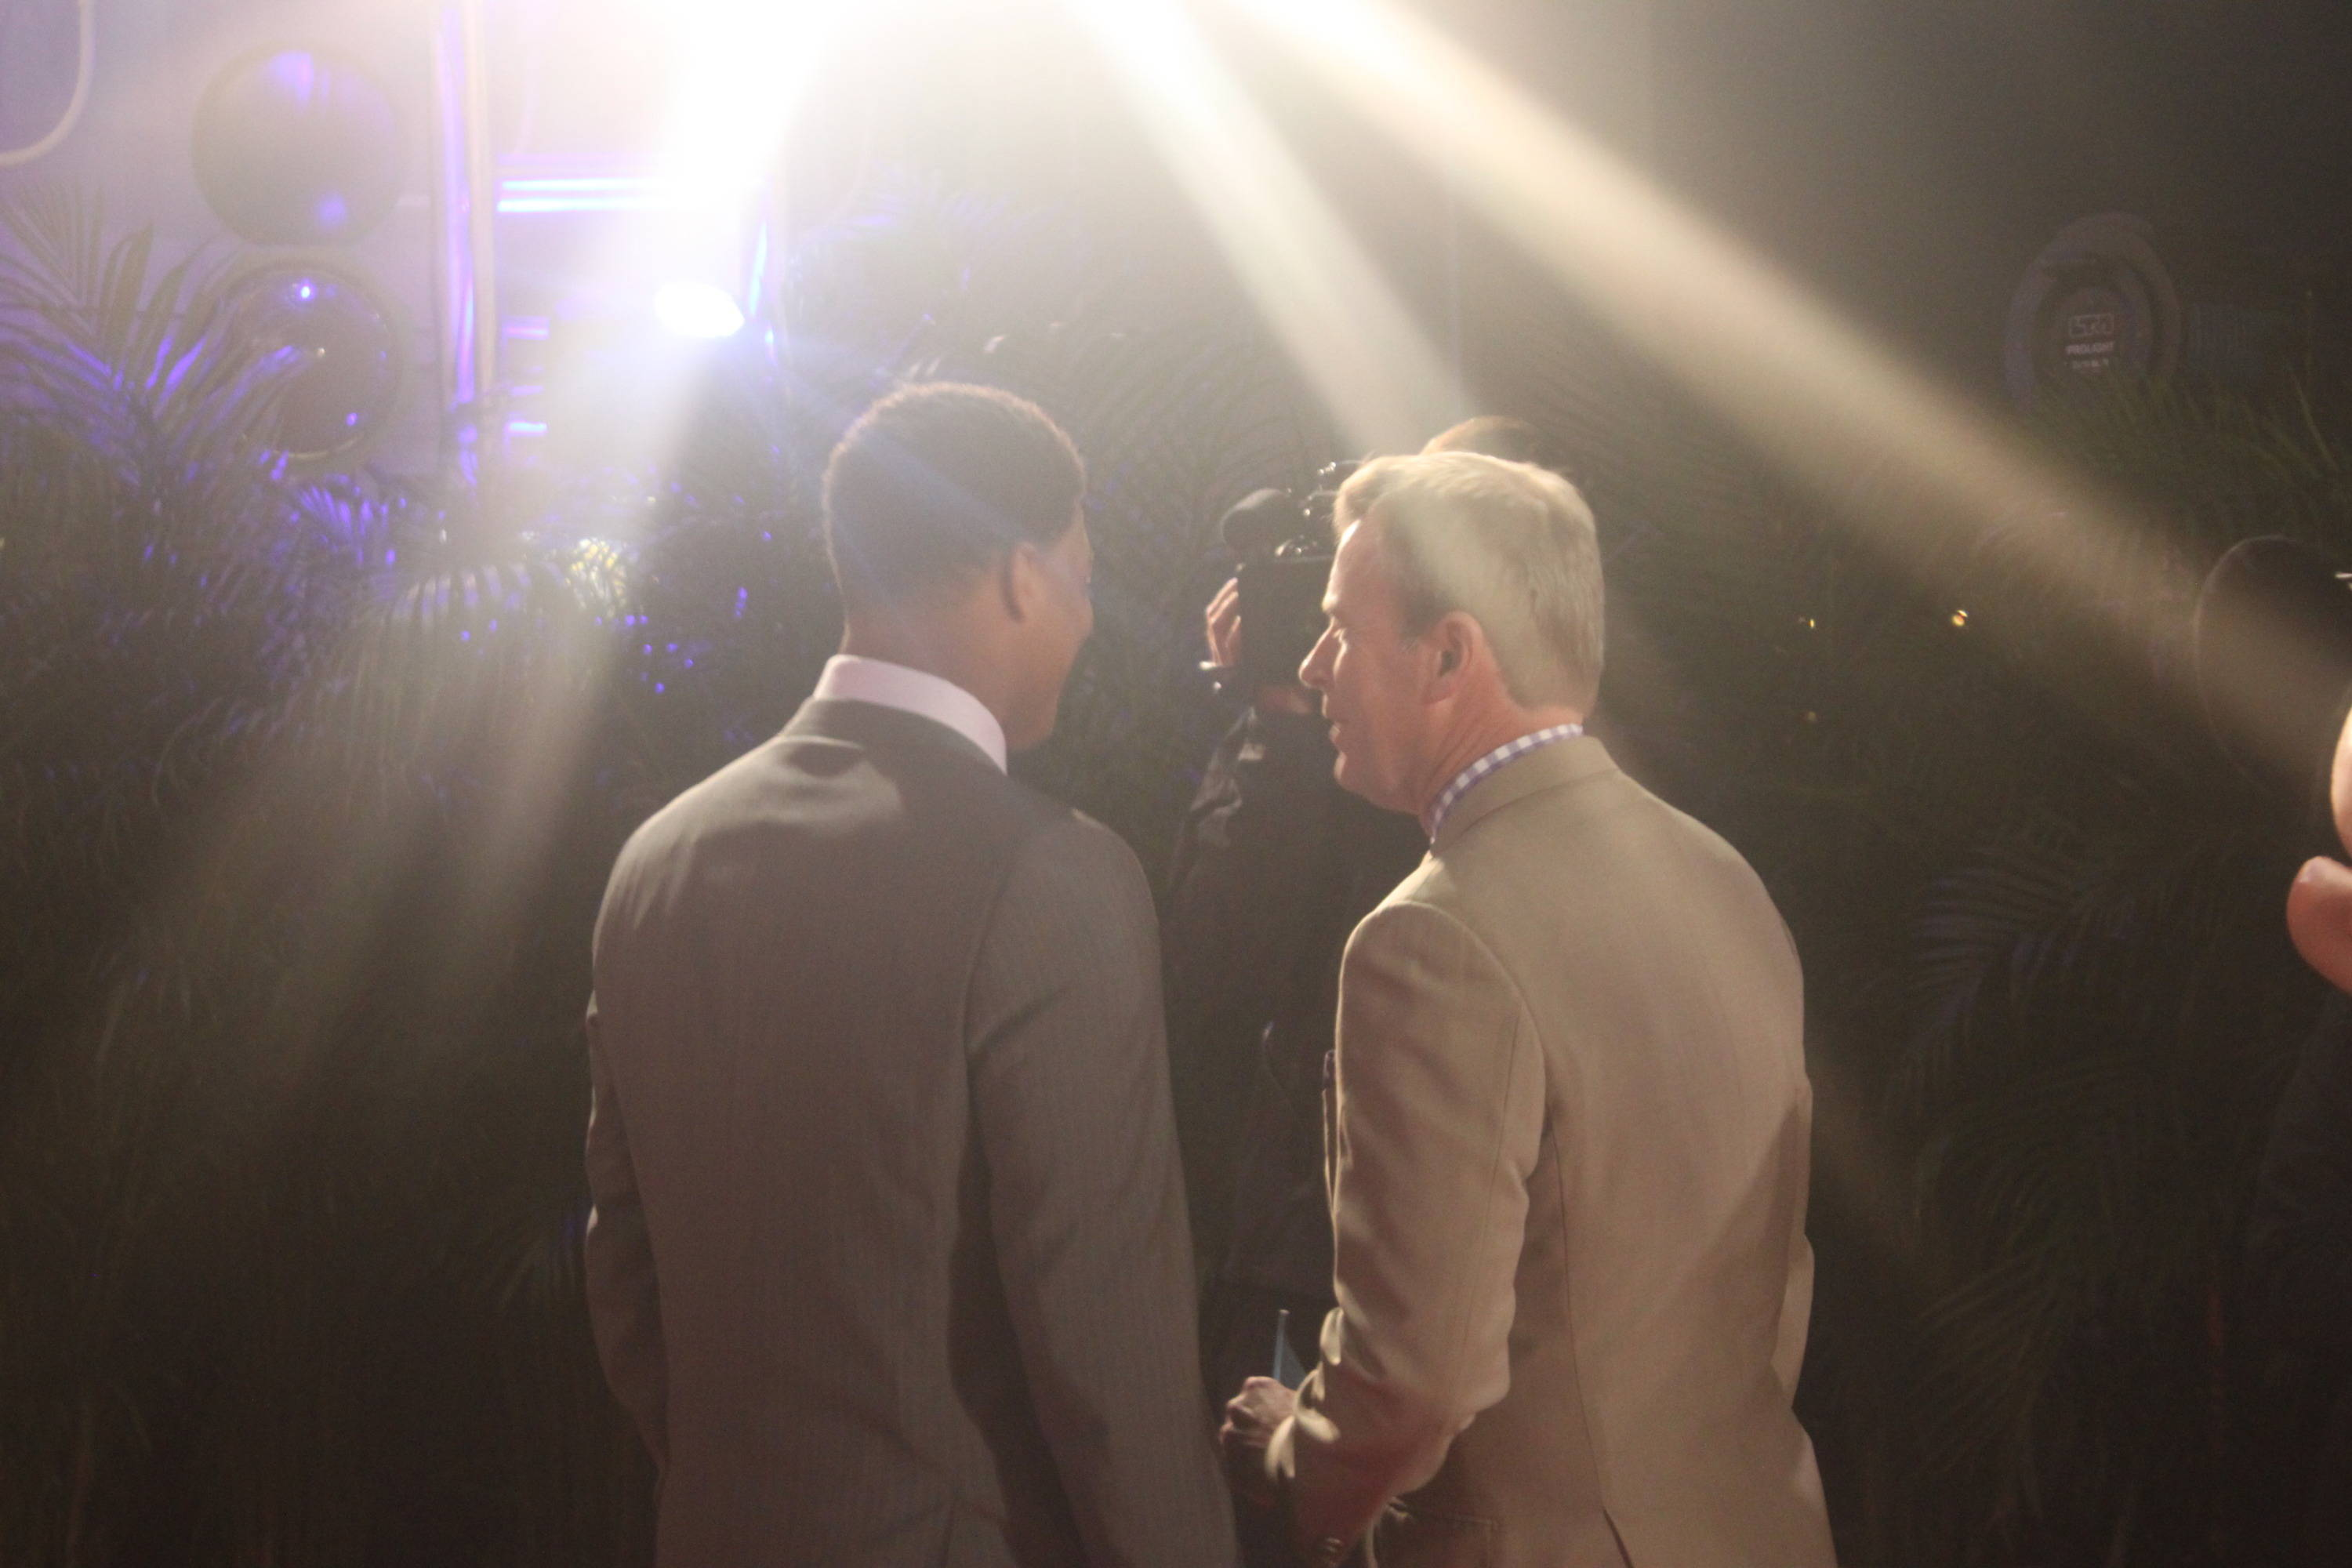 Jameis Winston interviewed by ESPN's Tom Rinaldi